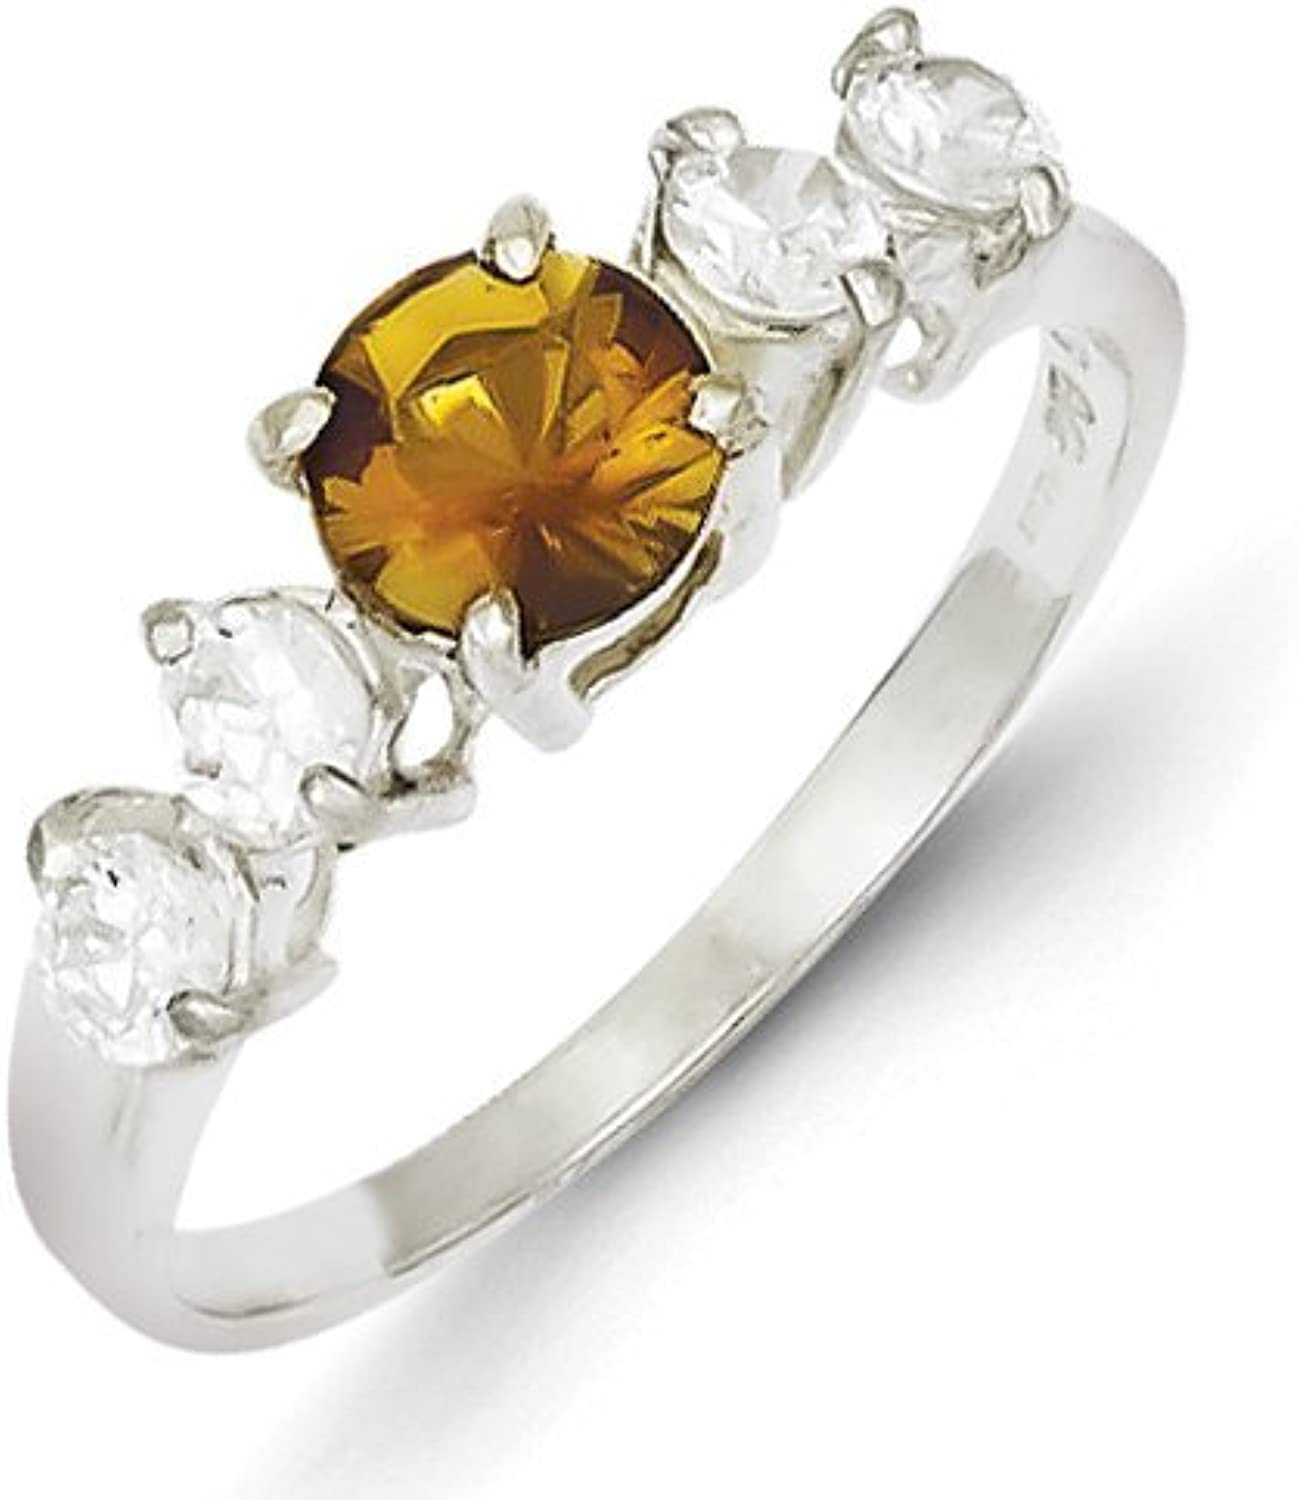 gold and Watches Sterling Silver Yellow Round CZ w Side Stones Ring